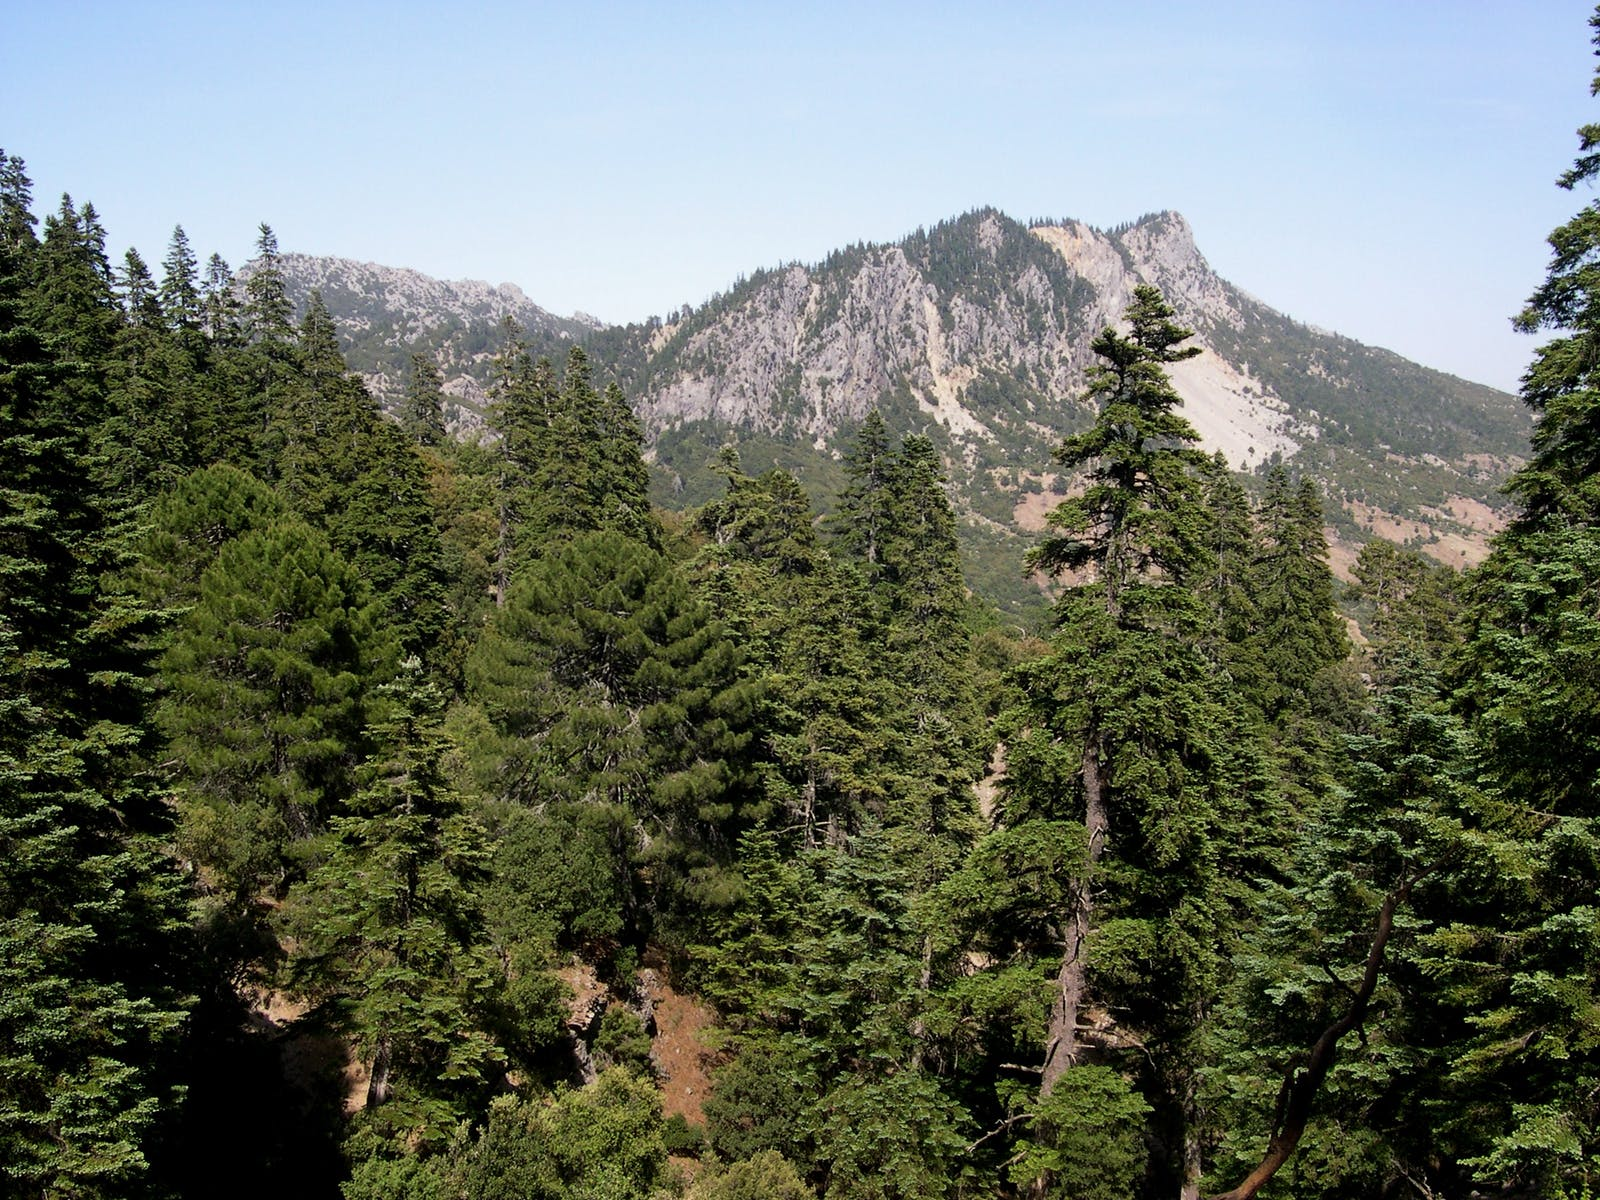 Mediterranean Conifer and Mixed Forests